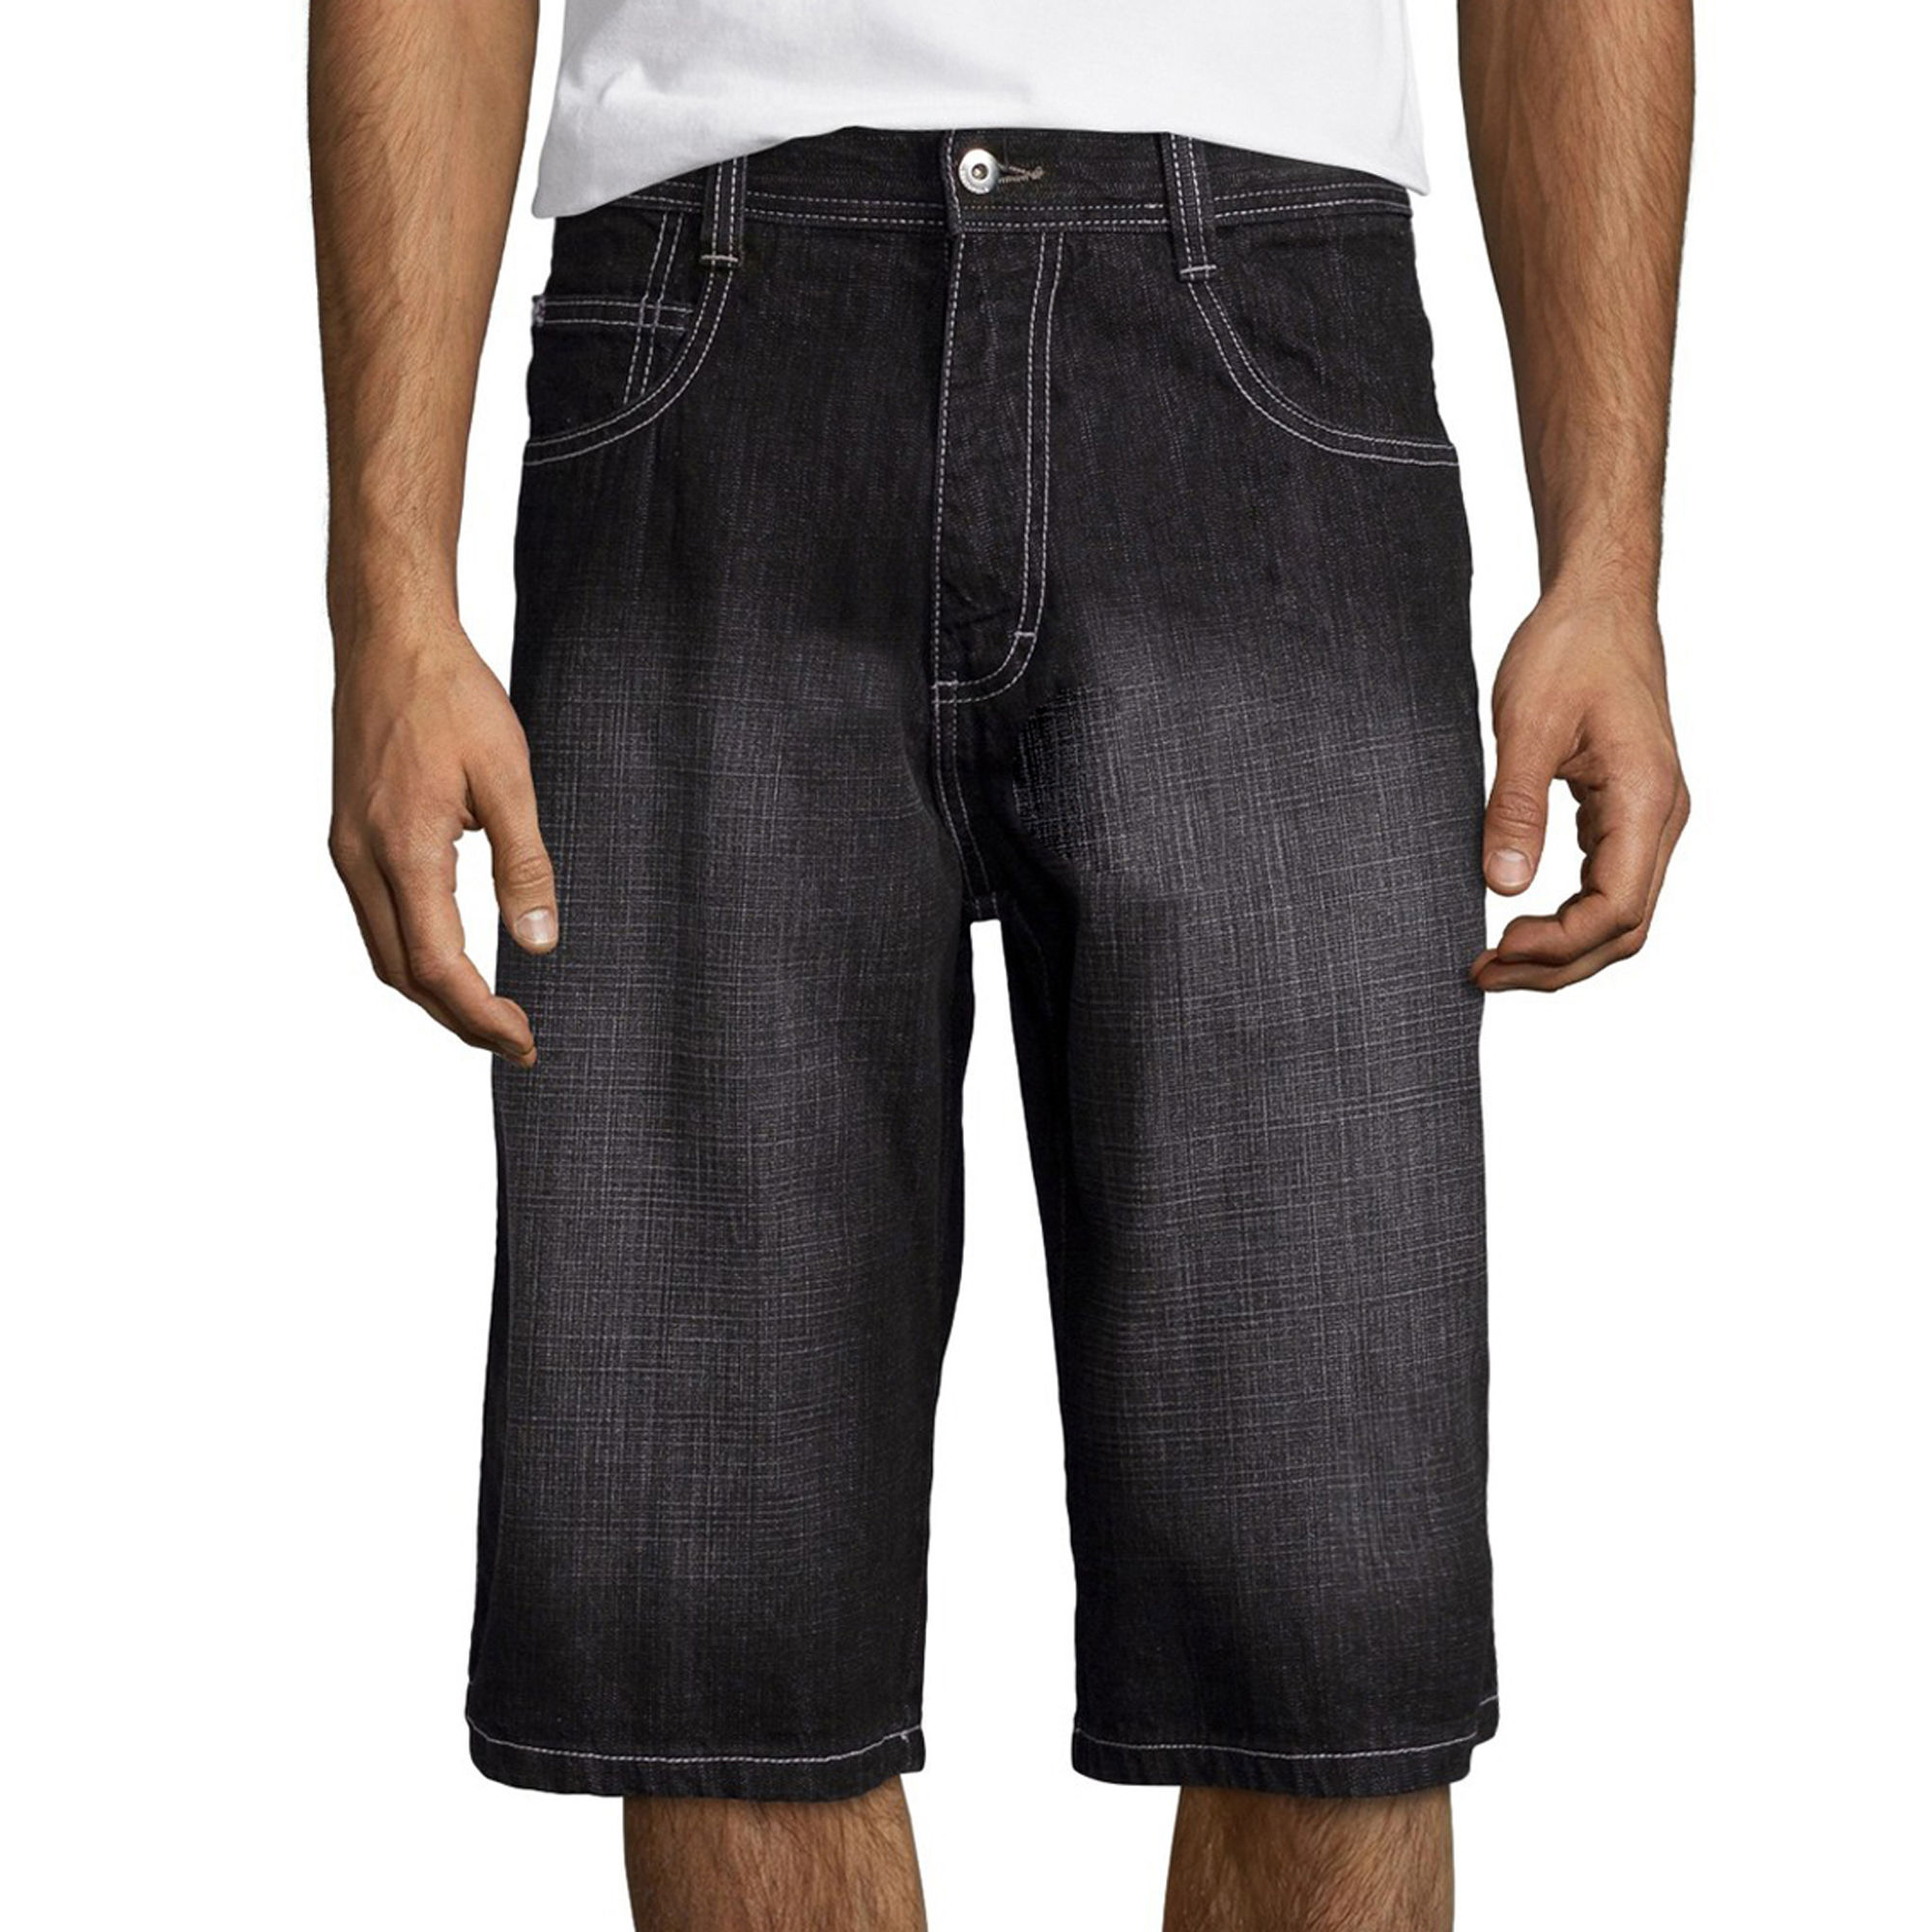 Upc 883399929134 Southpole Relaxed Fit Denim Shorts